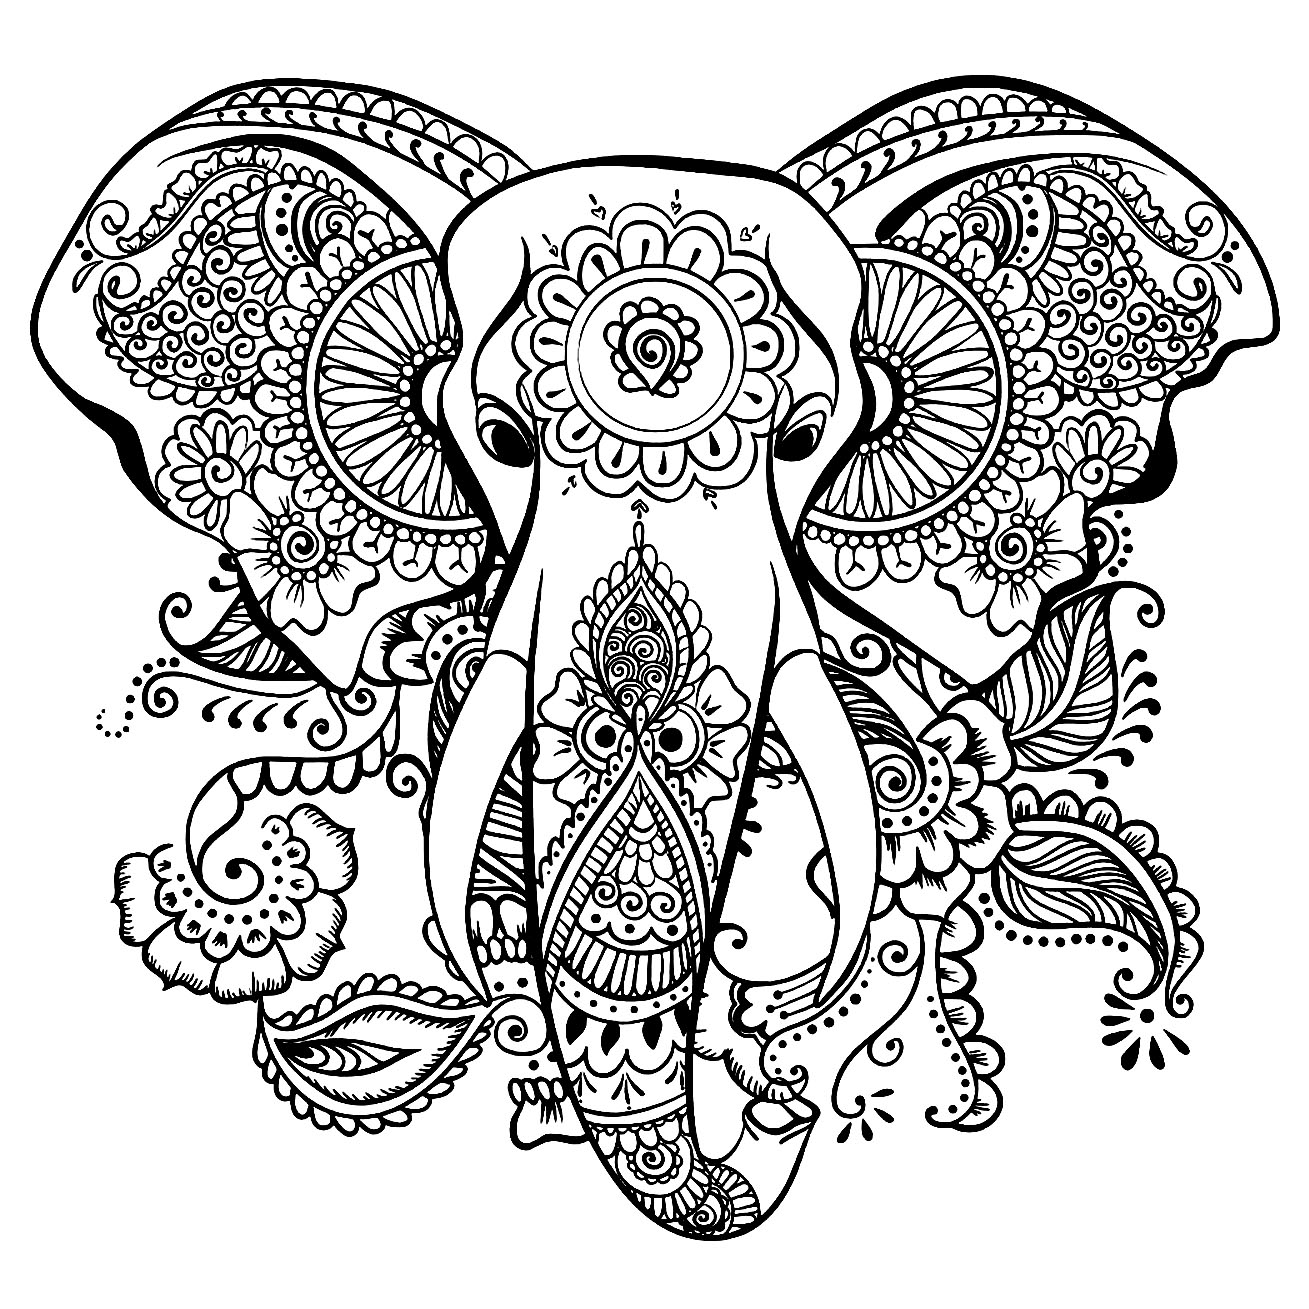 Elephants Free To Color For Children Elephants Kids Coloring Pages